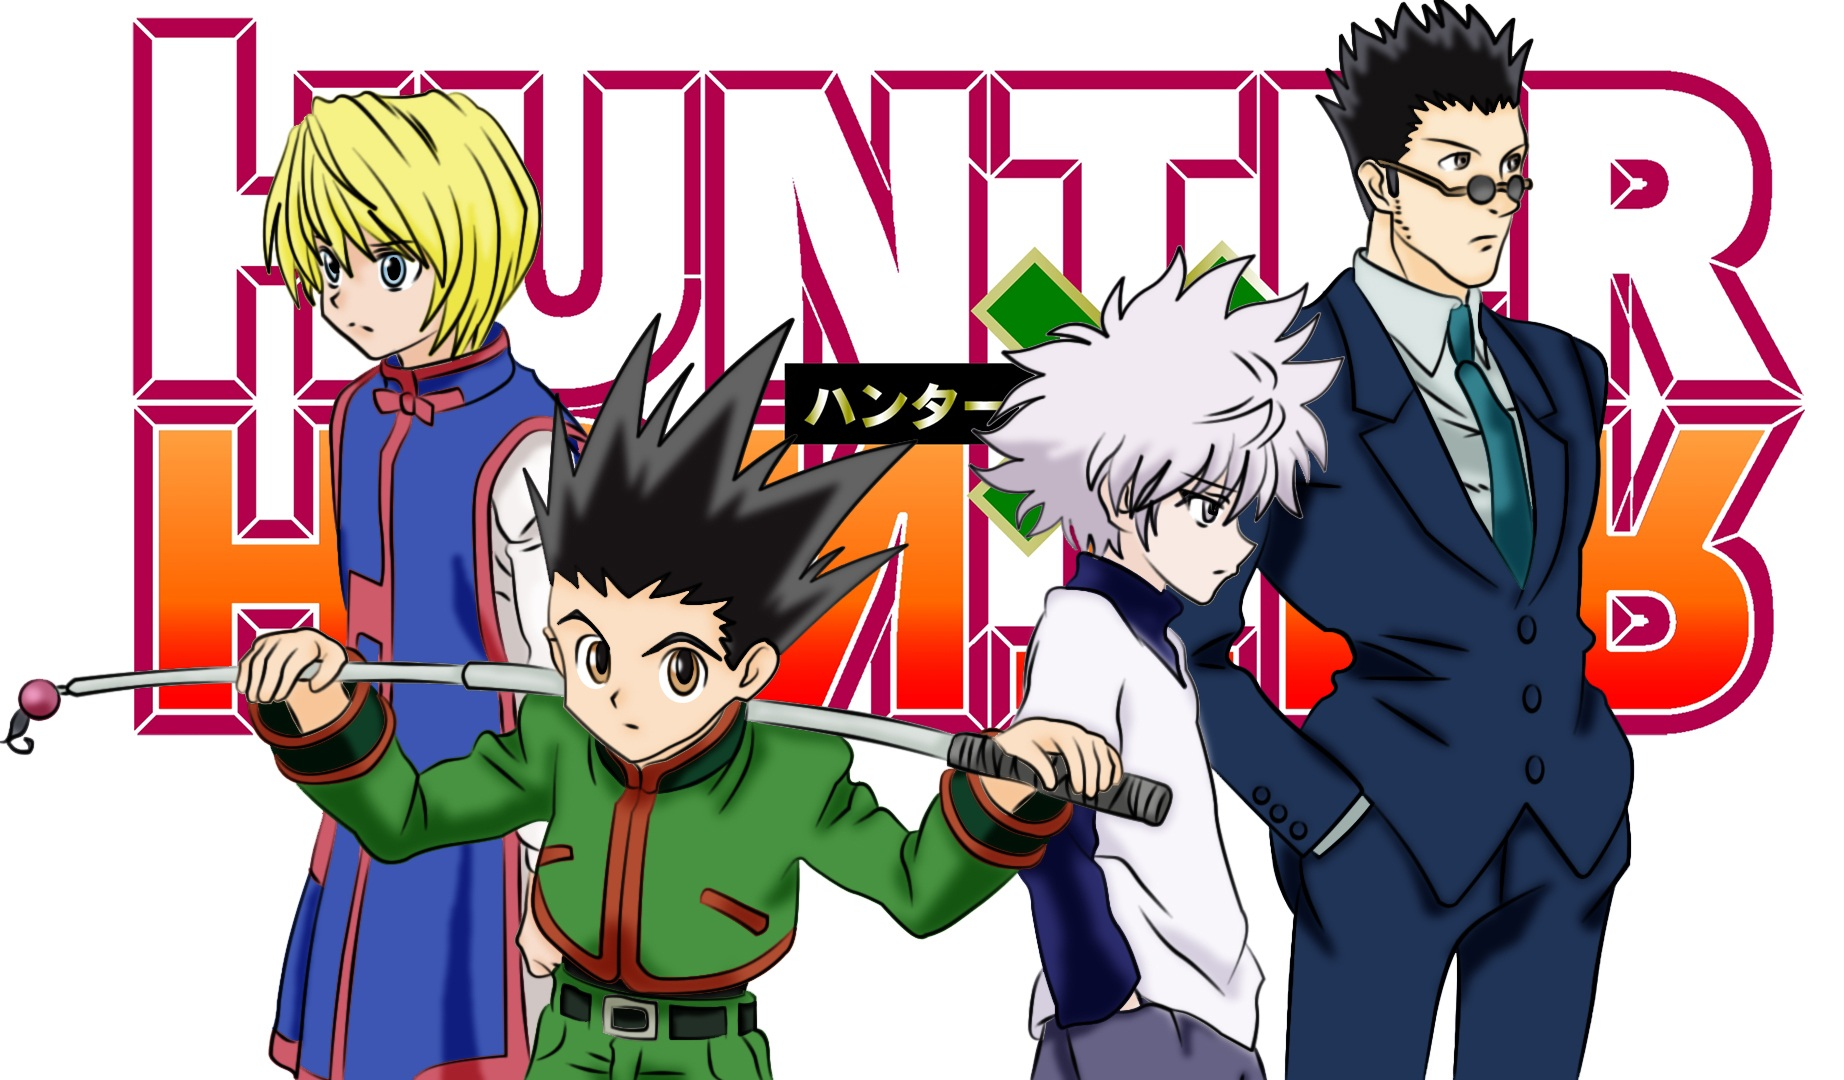 Anime Hunter X Hunter Wallpaper HD 4K for PC